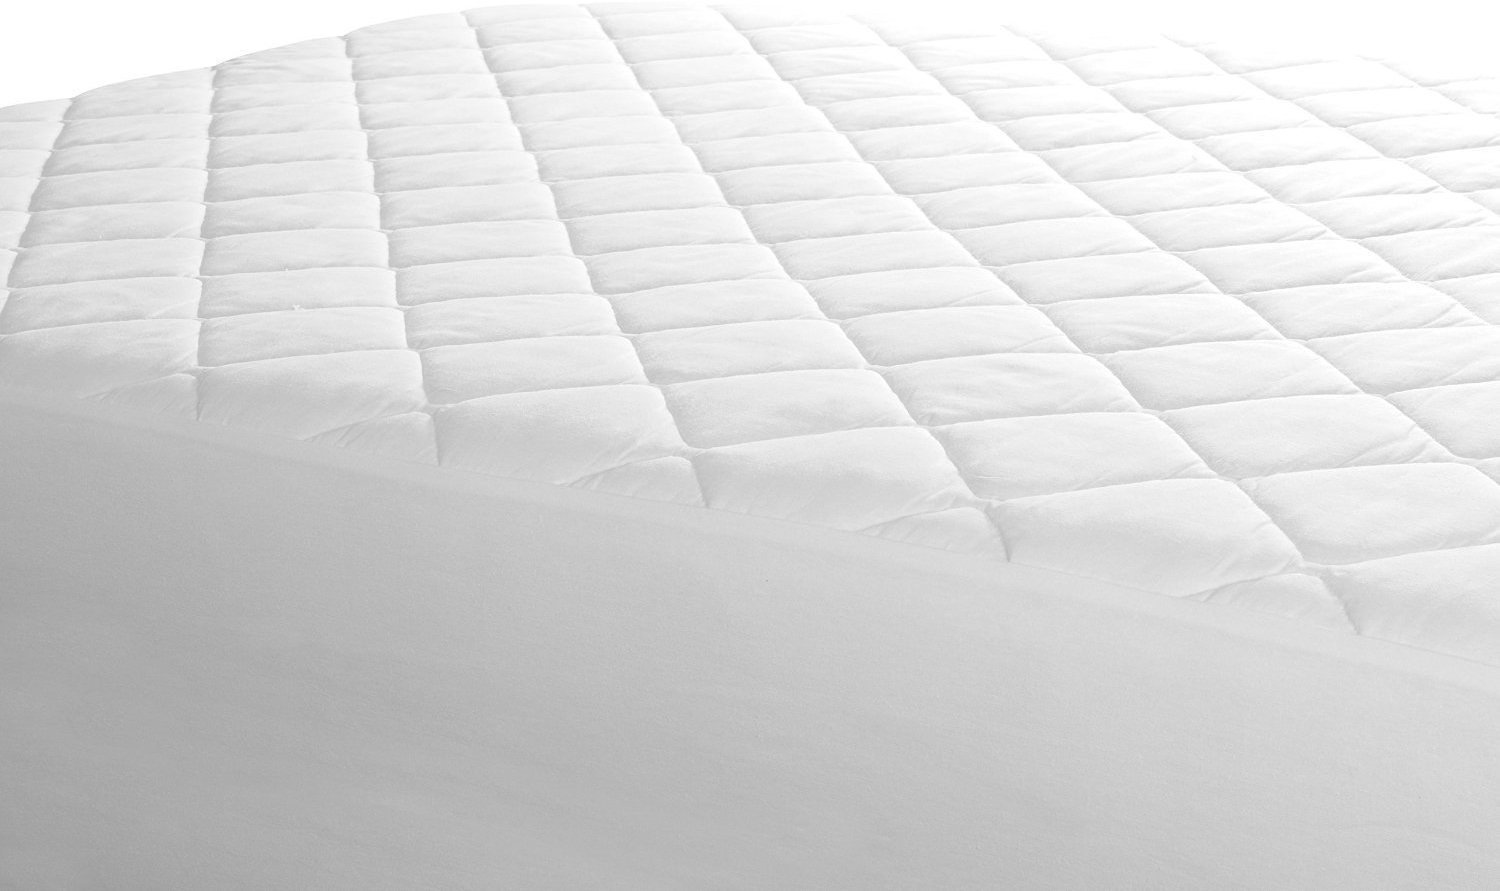 amazoncom quilted fitted mattress pad queen mattress cover stretches up to 16 inches deep mattress topper by utopia bedding home u0026 kitchen